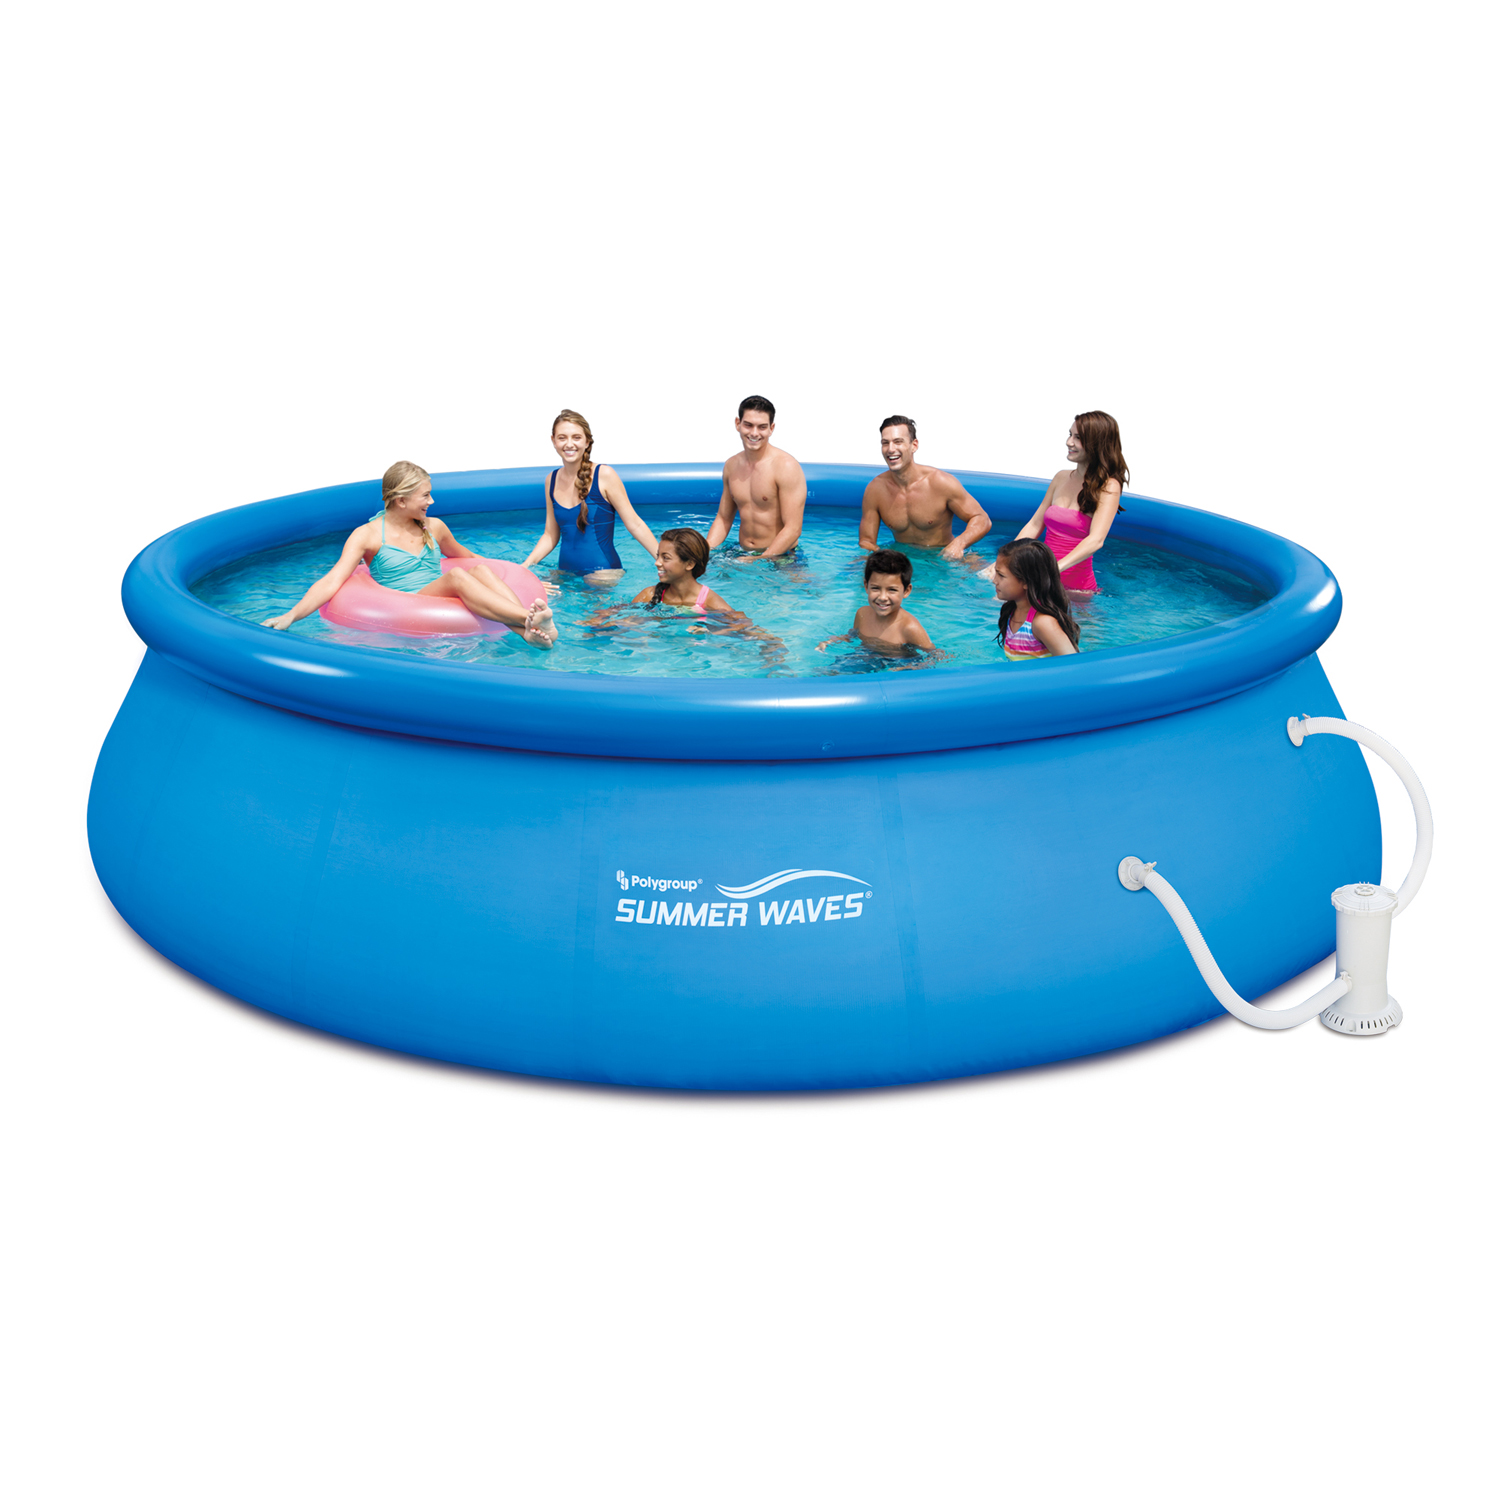 "Summer Waves 16' x 48"" Quick Set Above Ground Swimming Pool with Filter Pump System And Deluxe Accessory Set"